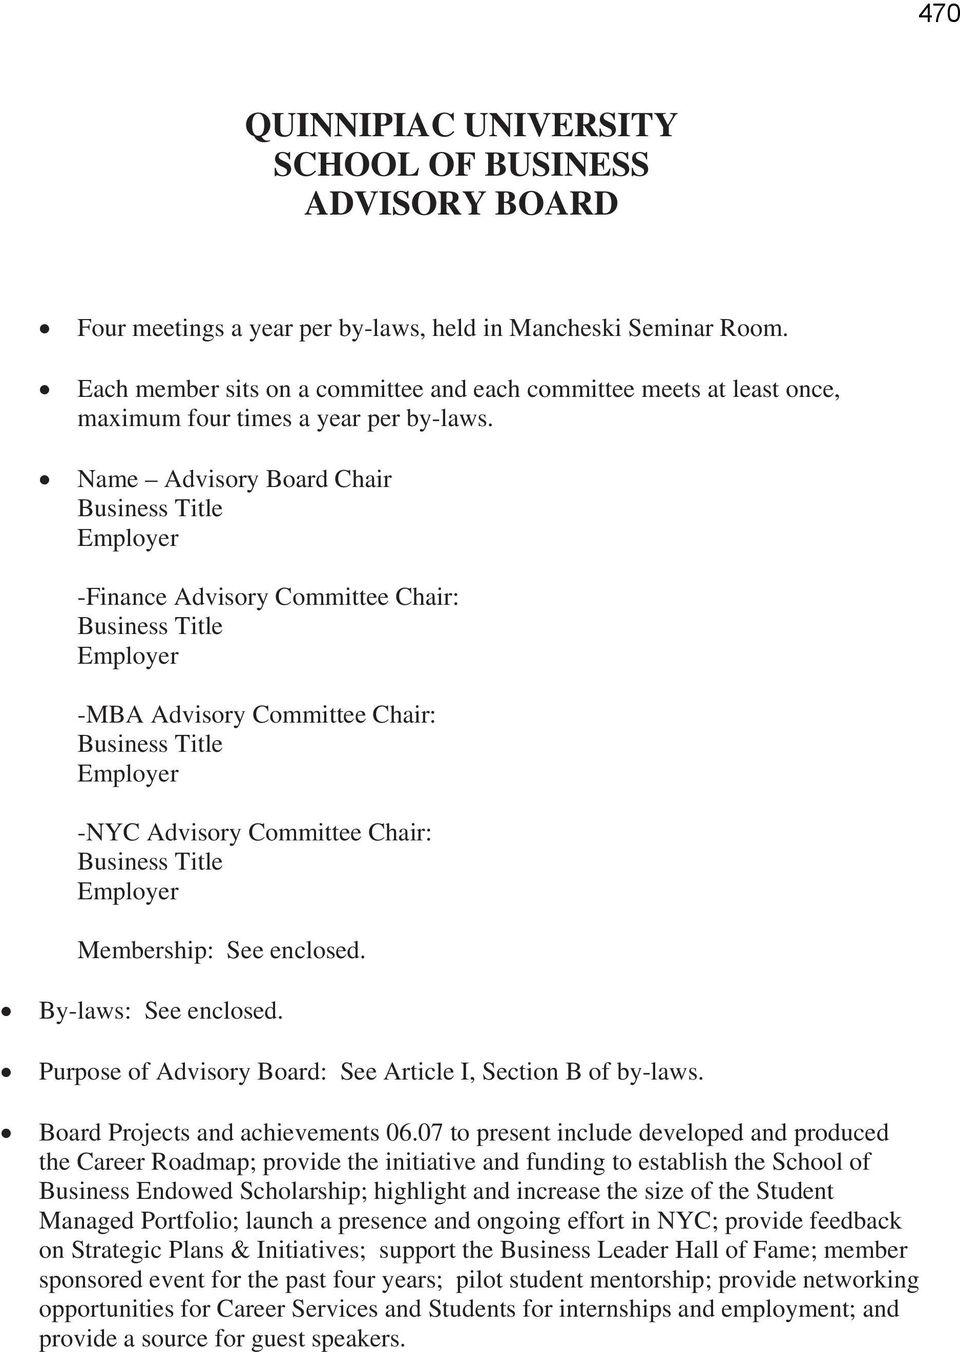 Name Advisory Board Chair Business Title Employer -Finance Advisory Committee Chair: Business Title Employer -MBA Advisory Committee Chair: Business Title Employer -NYC Advisory Committee Chair: